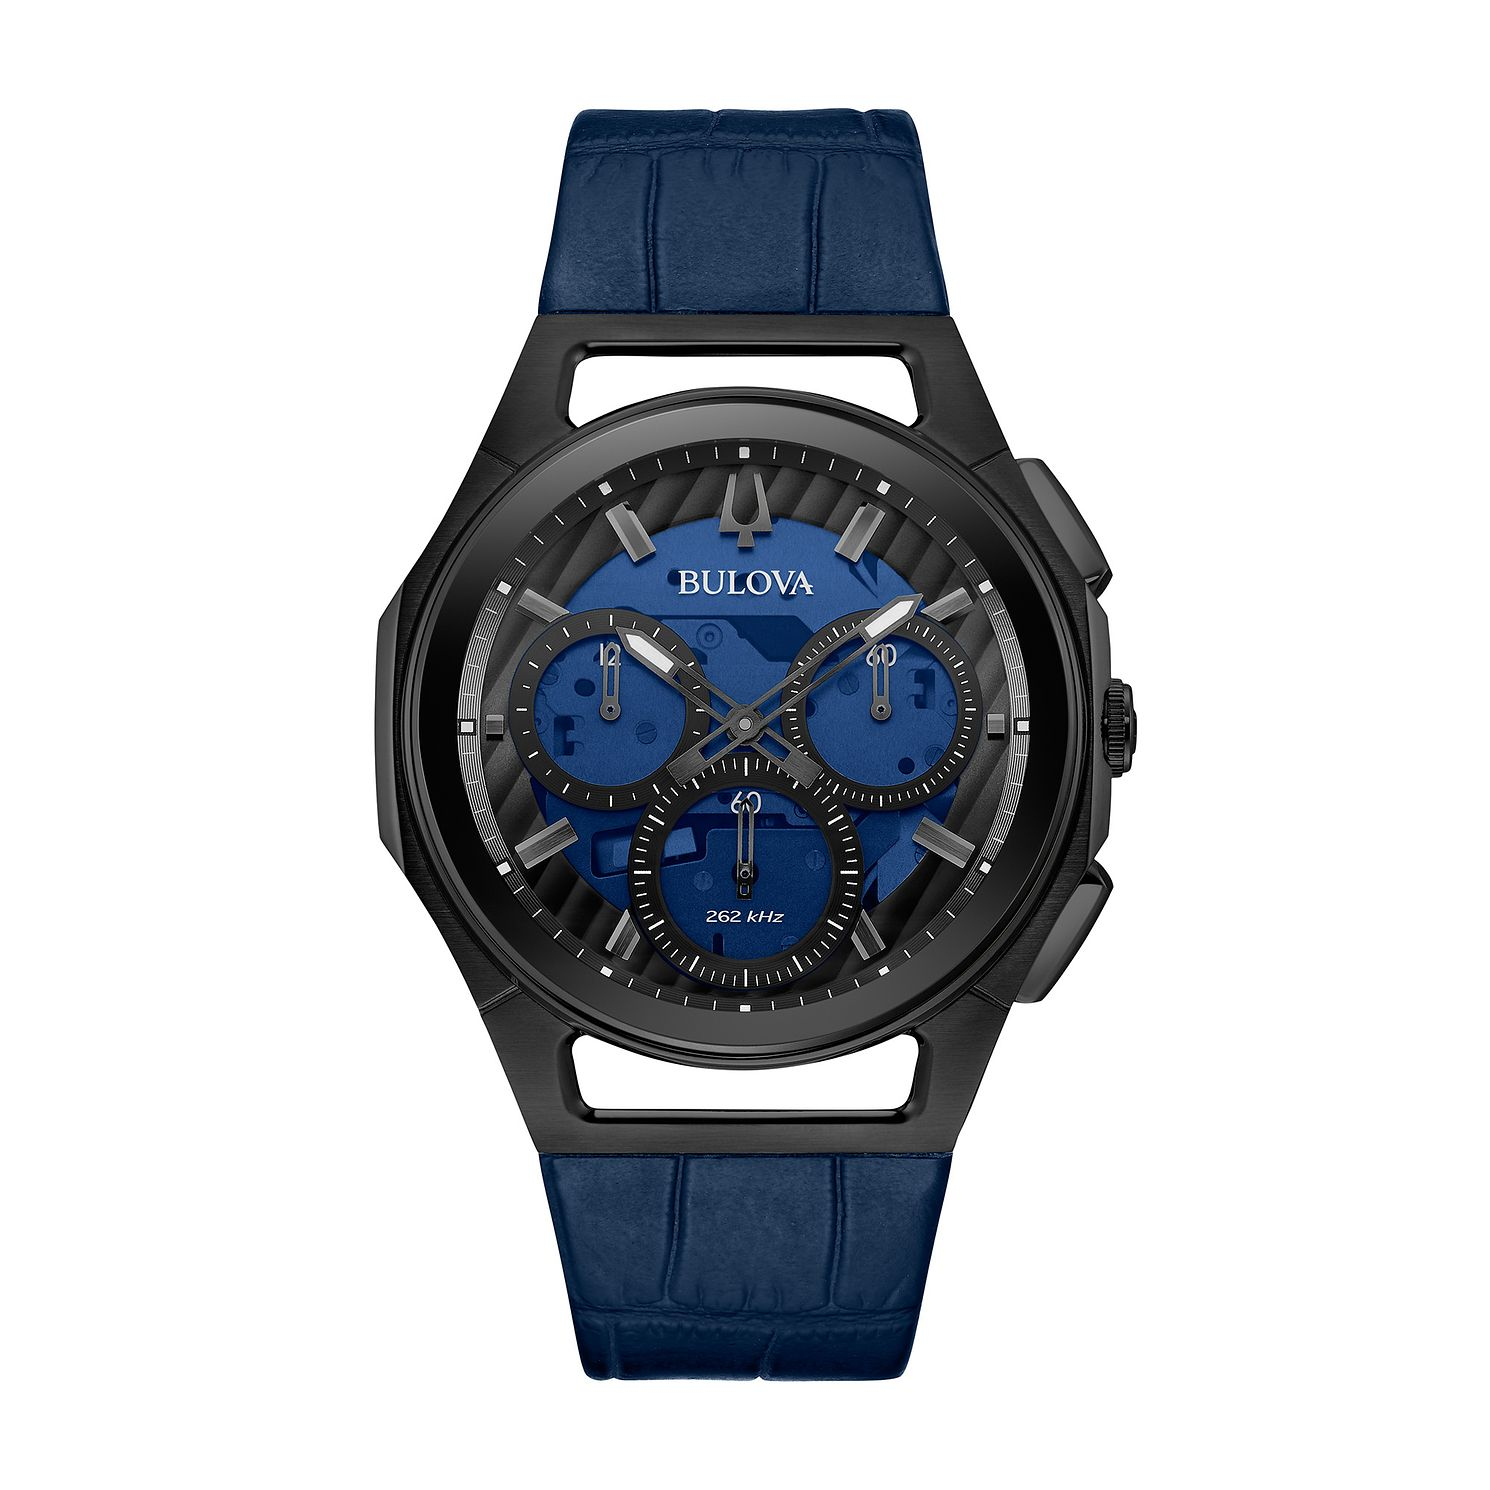 Bulova Curv Men's Blue Leather Strap Watch - Product number 2872048